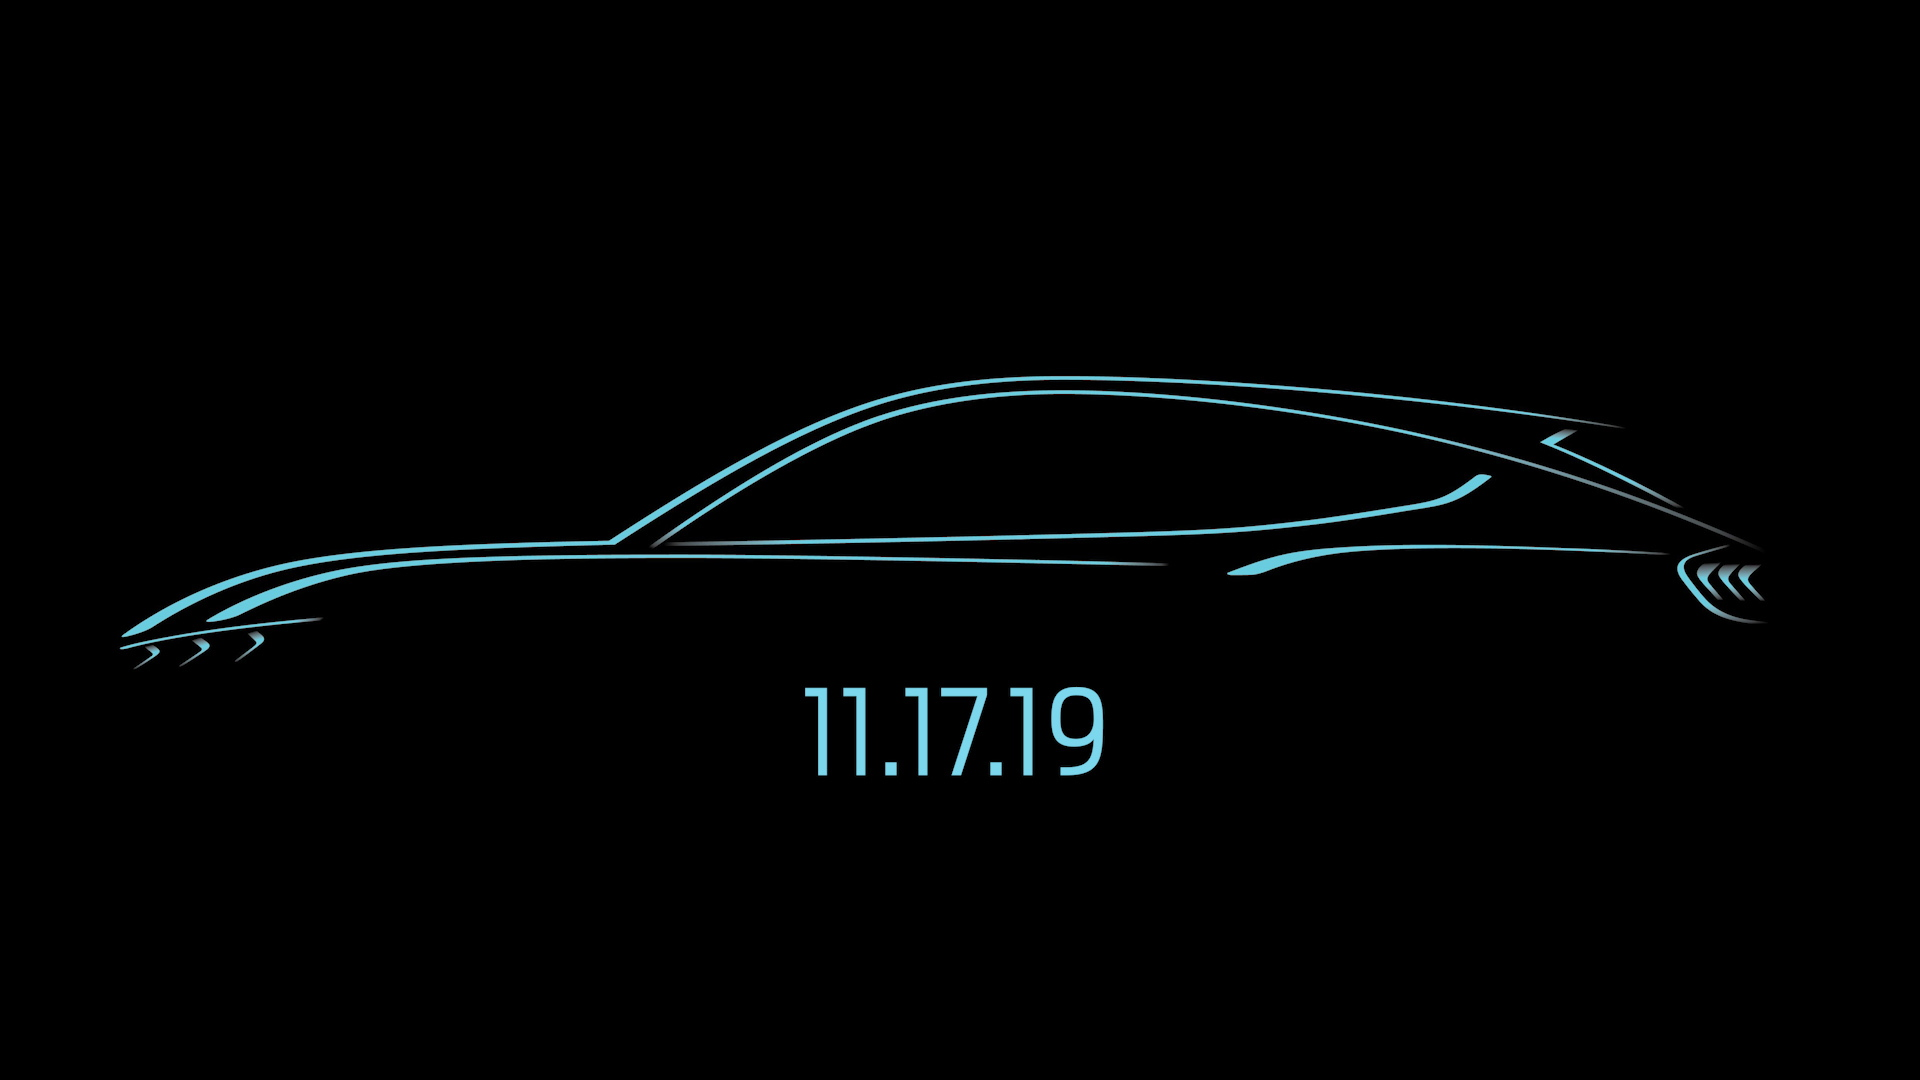 Ford's 'Mustang-inspired' all-electric SUV will debut on Nov